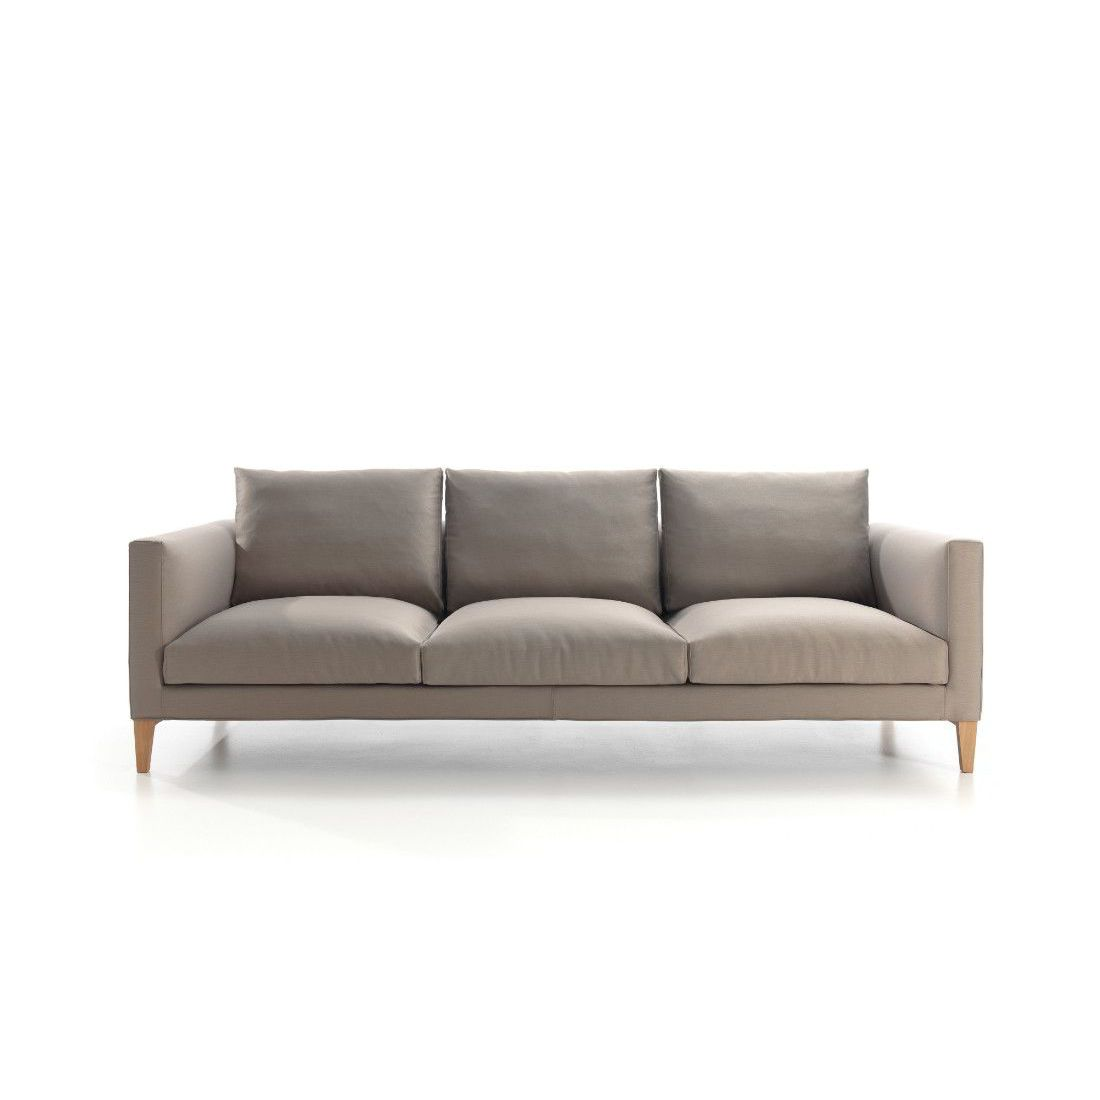 Modular Sofa Contemporary Fabric 3 Seater Slim By Arbel